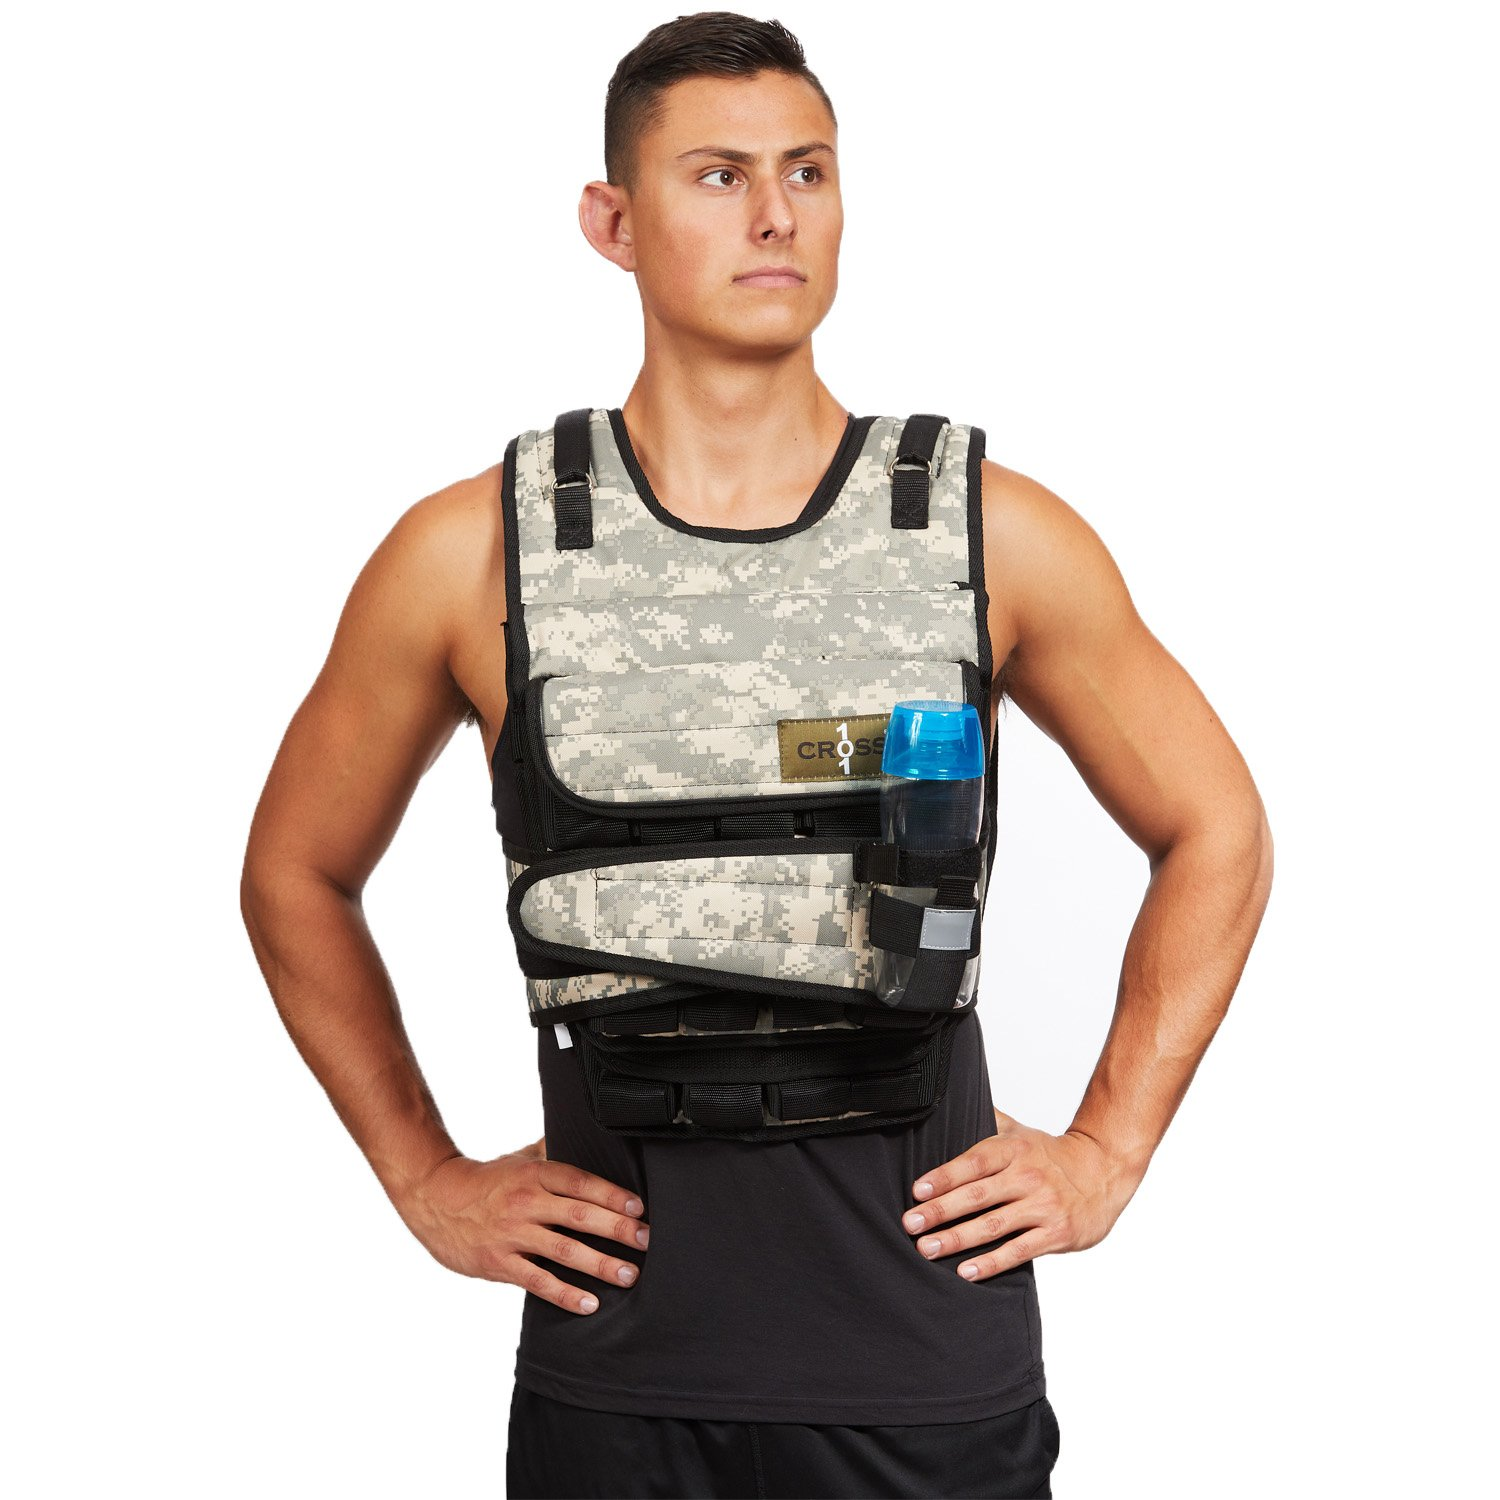 CROSS101 Adjustable Camouflage Weighted Vest 12LBS - 140LBS (Desert - 100LBS) by CROSS101 (Image #2)